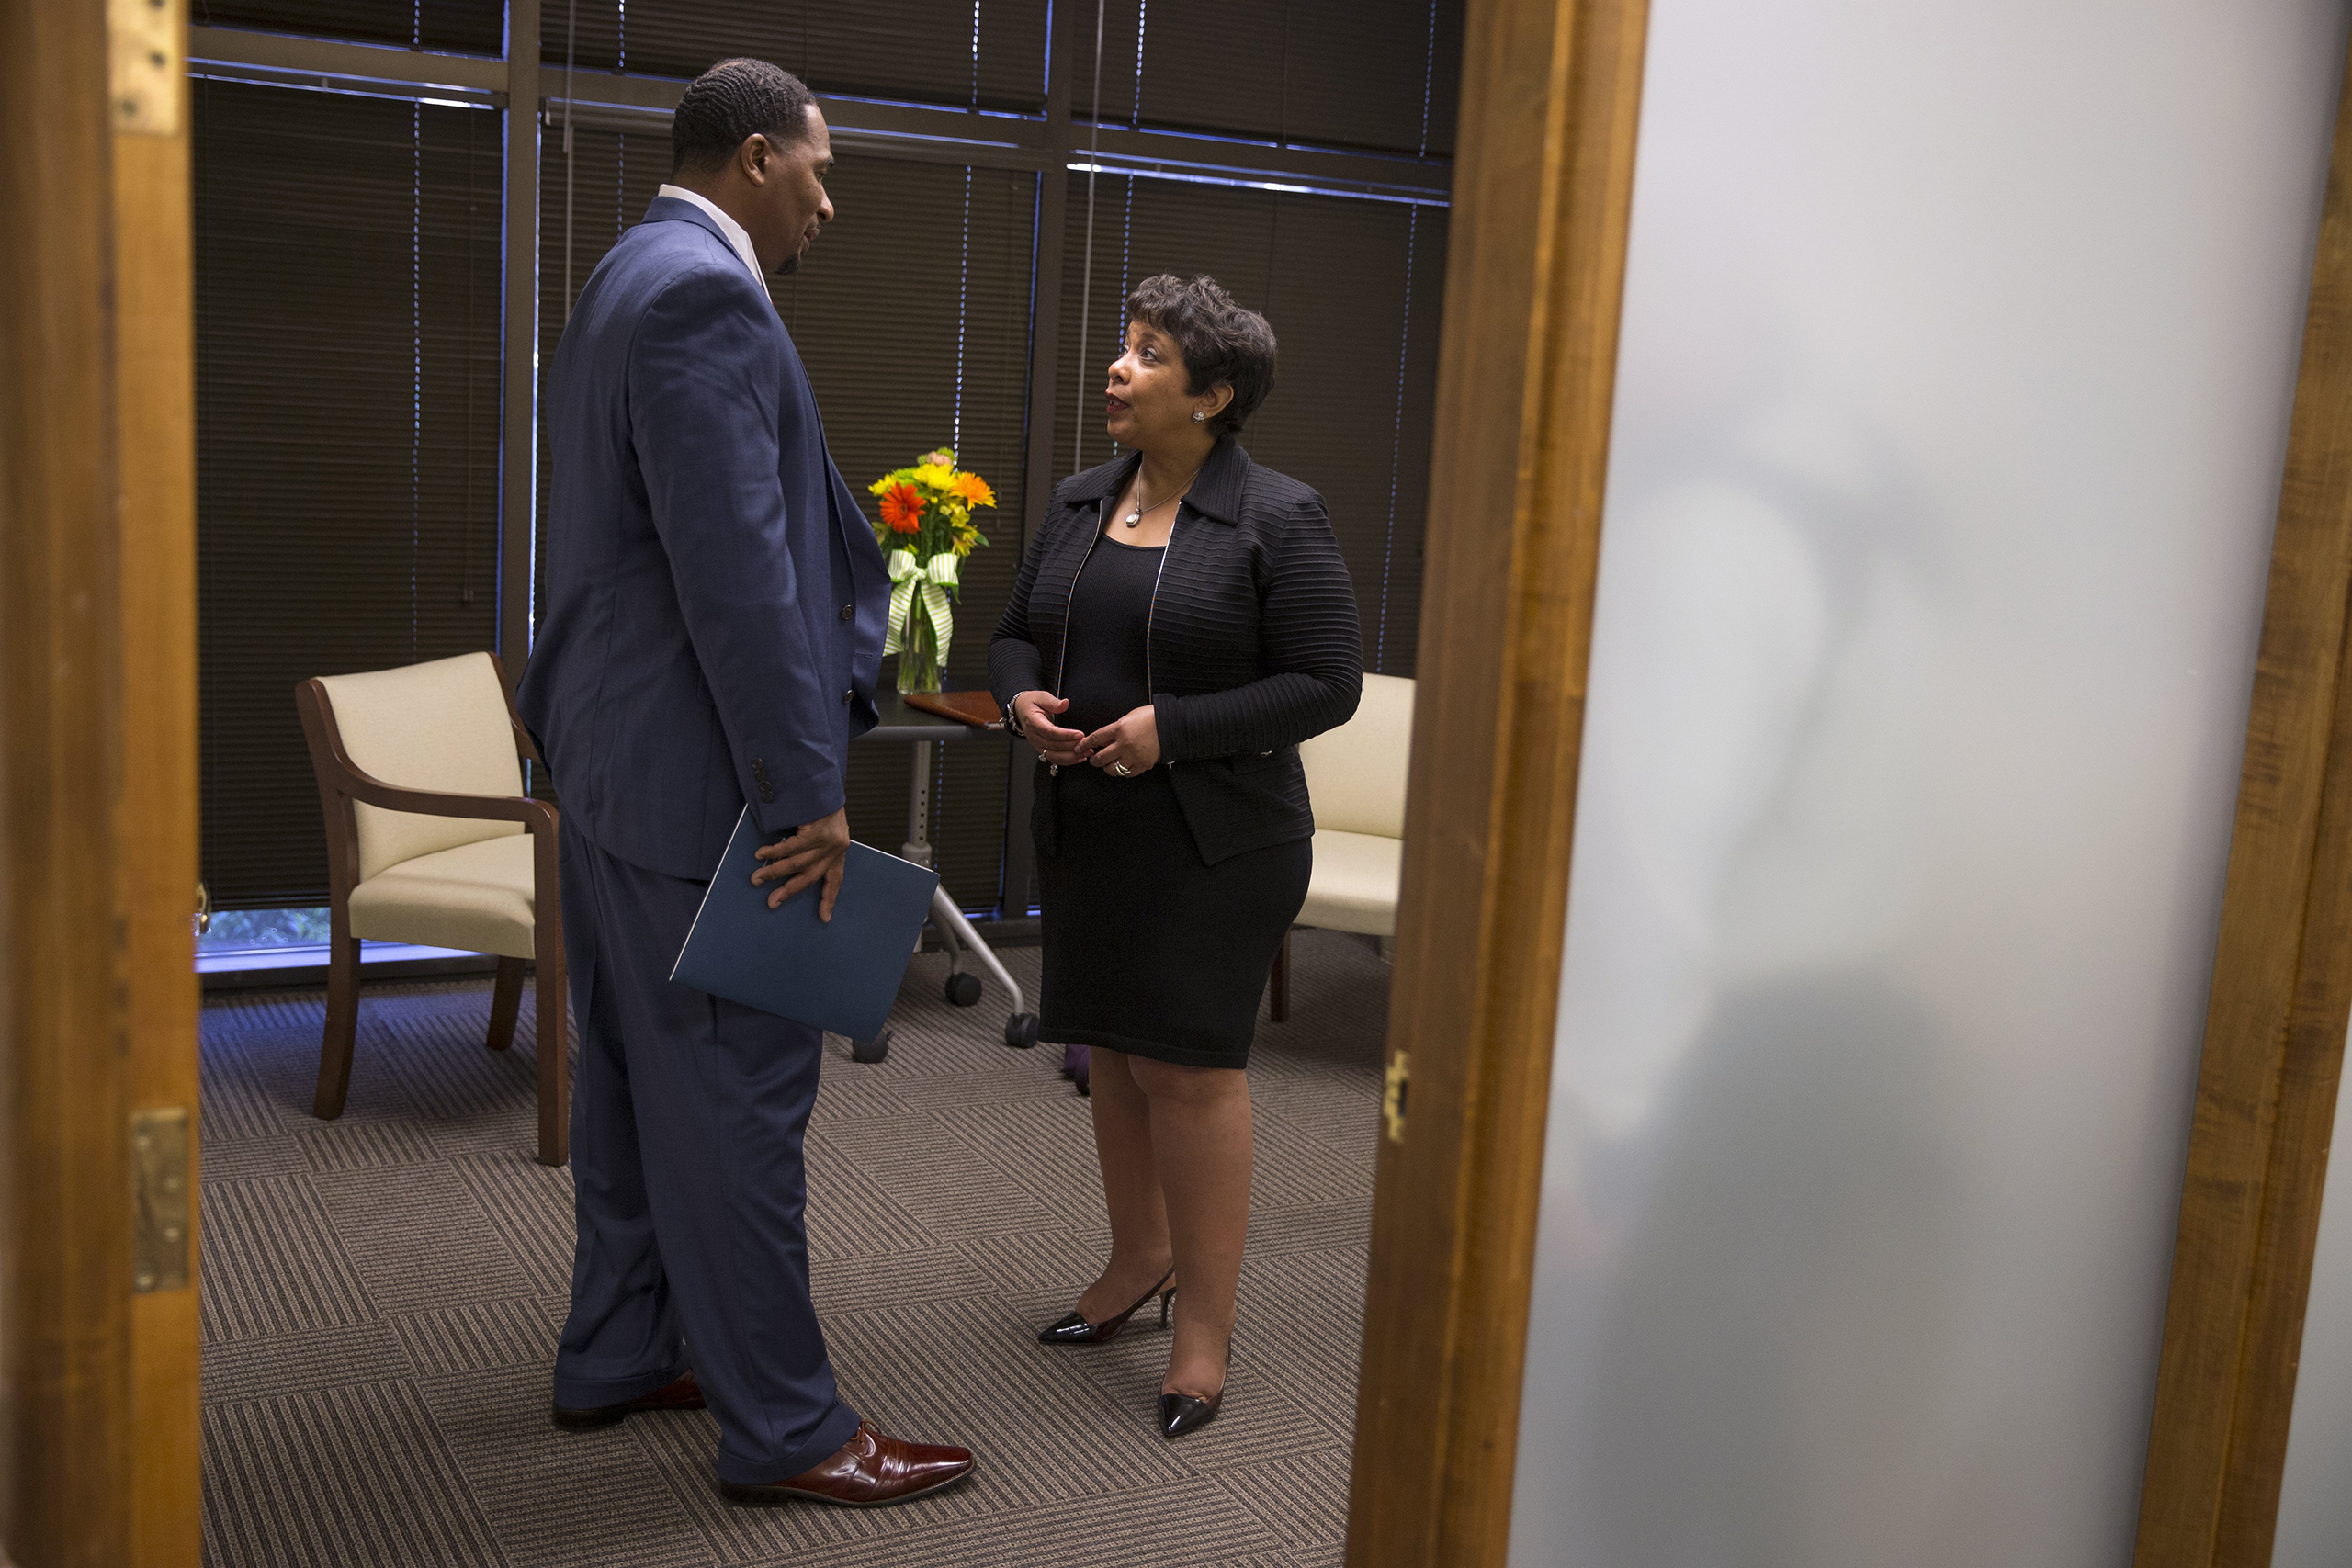 Attorney General Loretta Lynch, right, speaks with Clarence Aaron about his experiences after his release from federal prison during an event to highlight policies that aim to reduce barriers for formerly incarcerated individuals in Mobile, Ala., April 29, 2016.